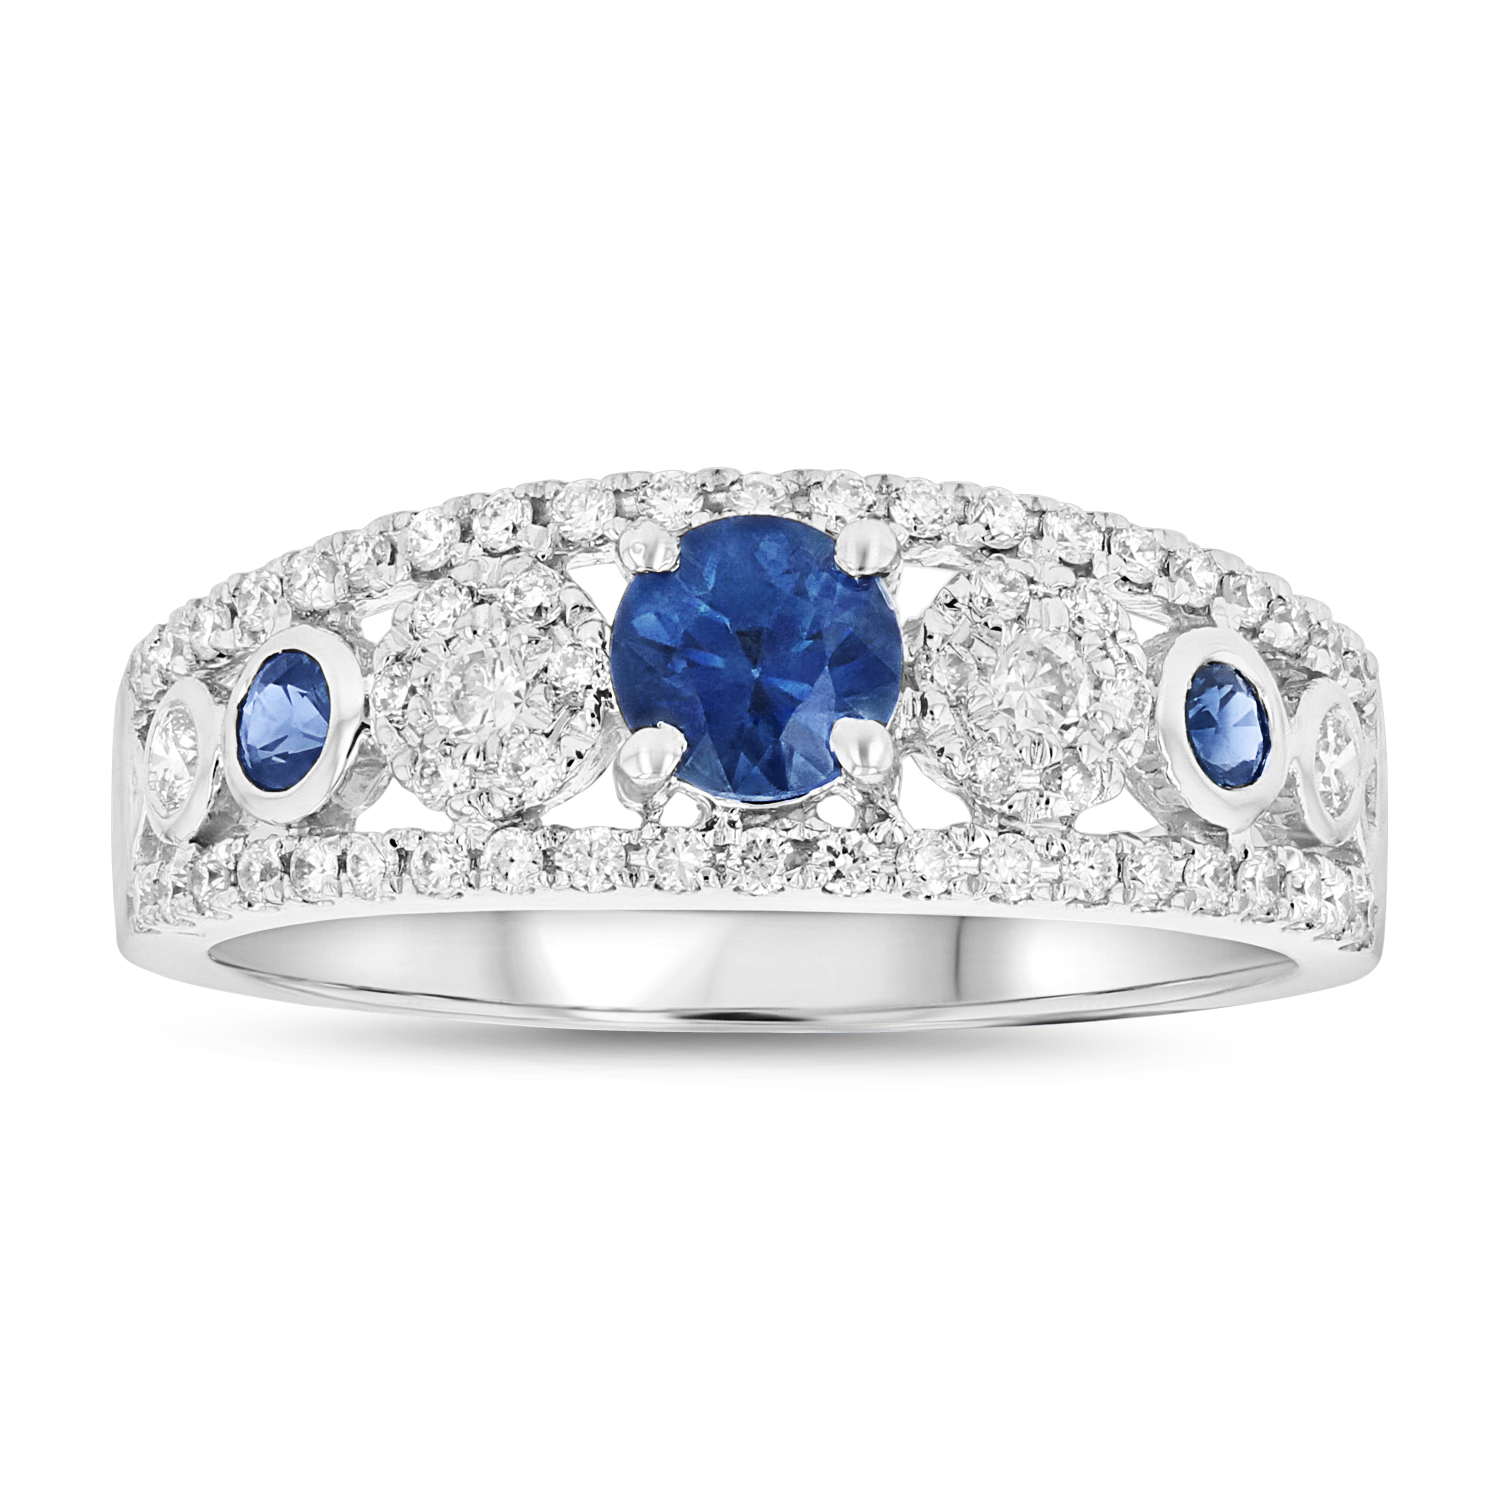 View Diamond and sapphire Ring in 14k White gold